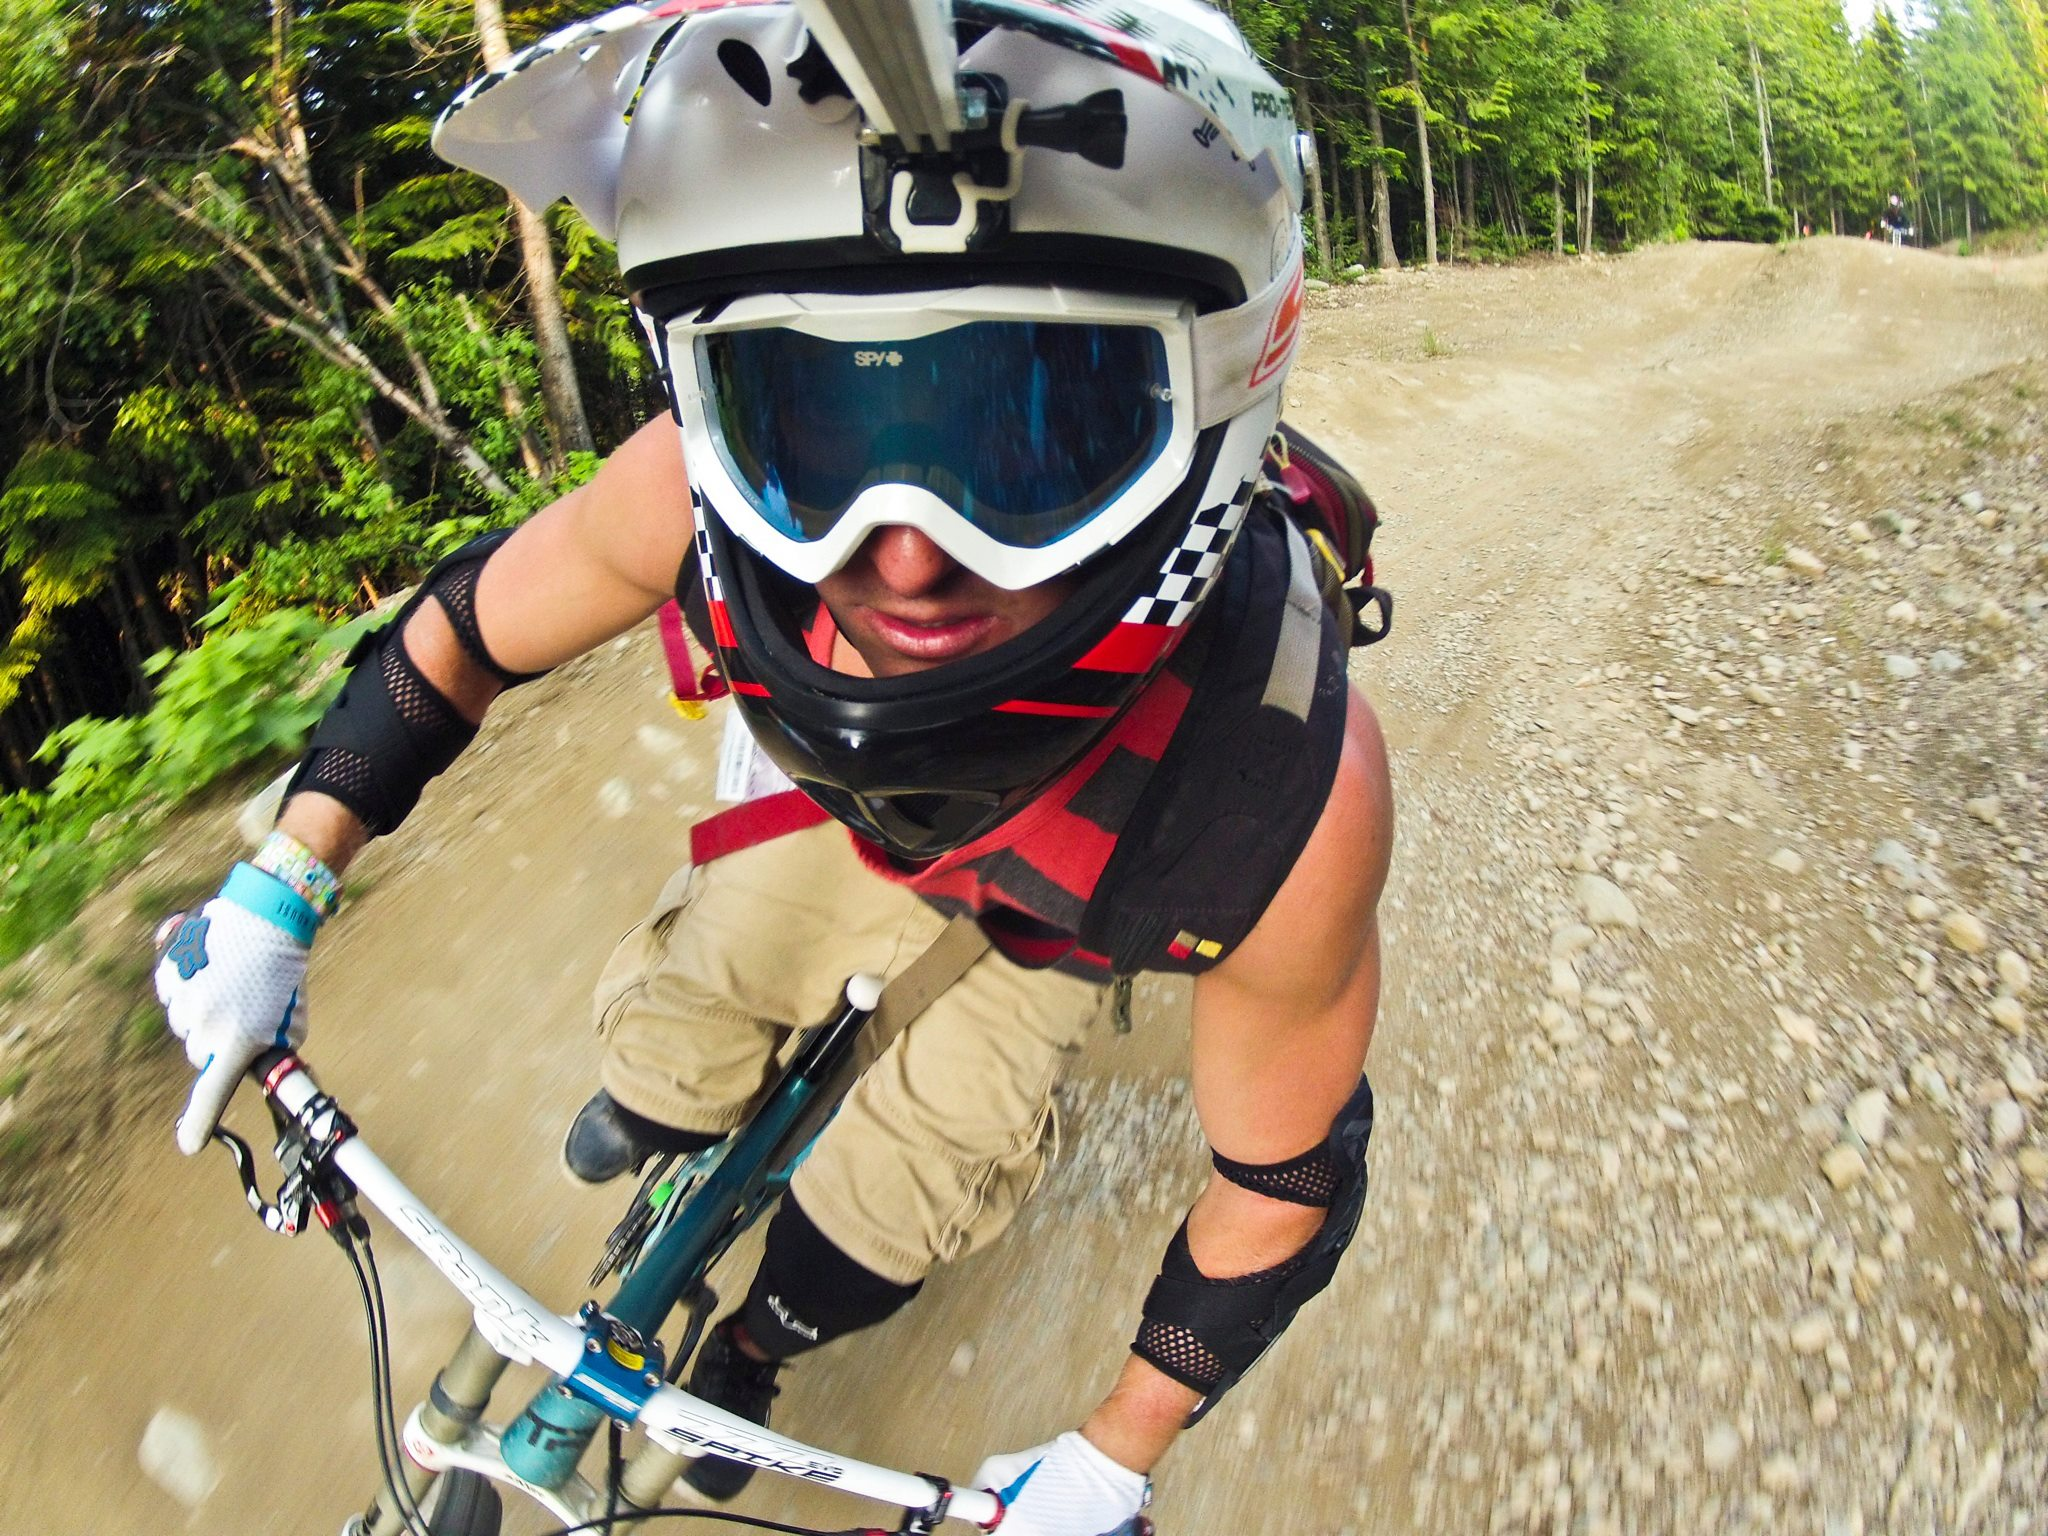 MTB Photo of the Day!